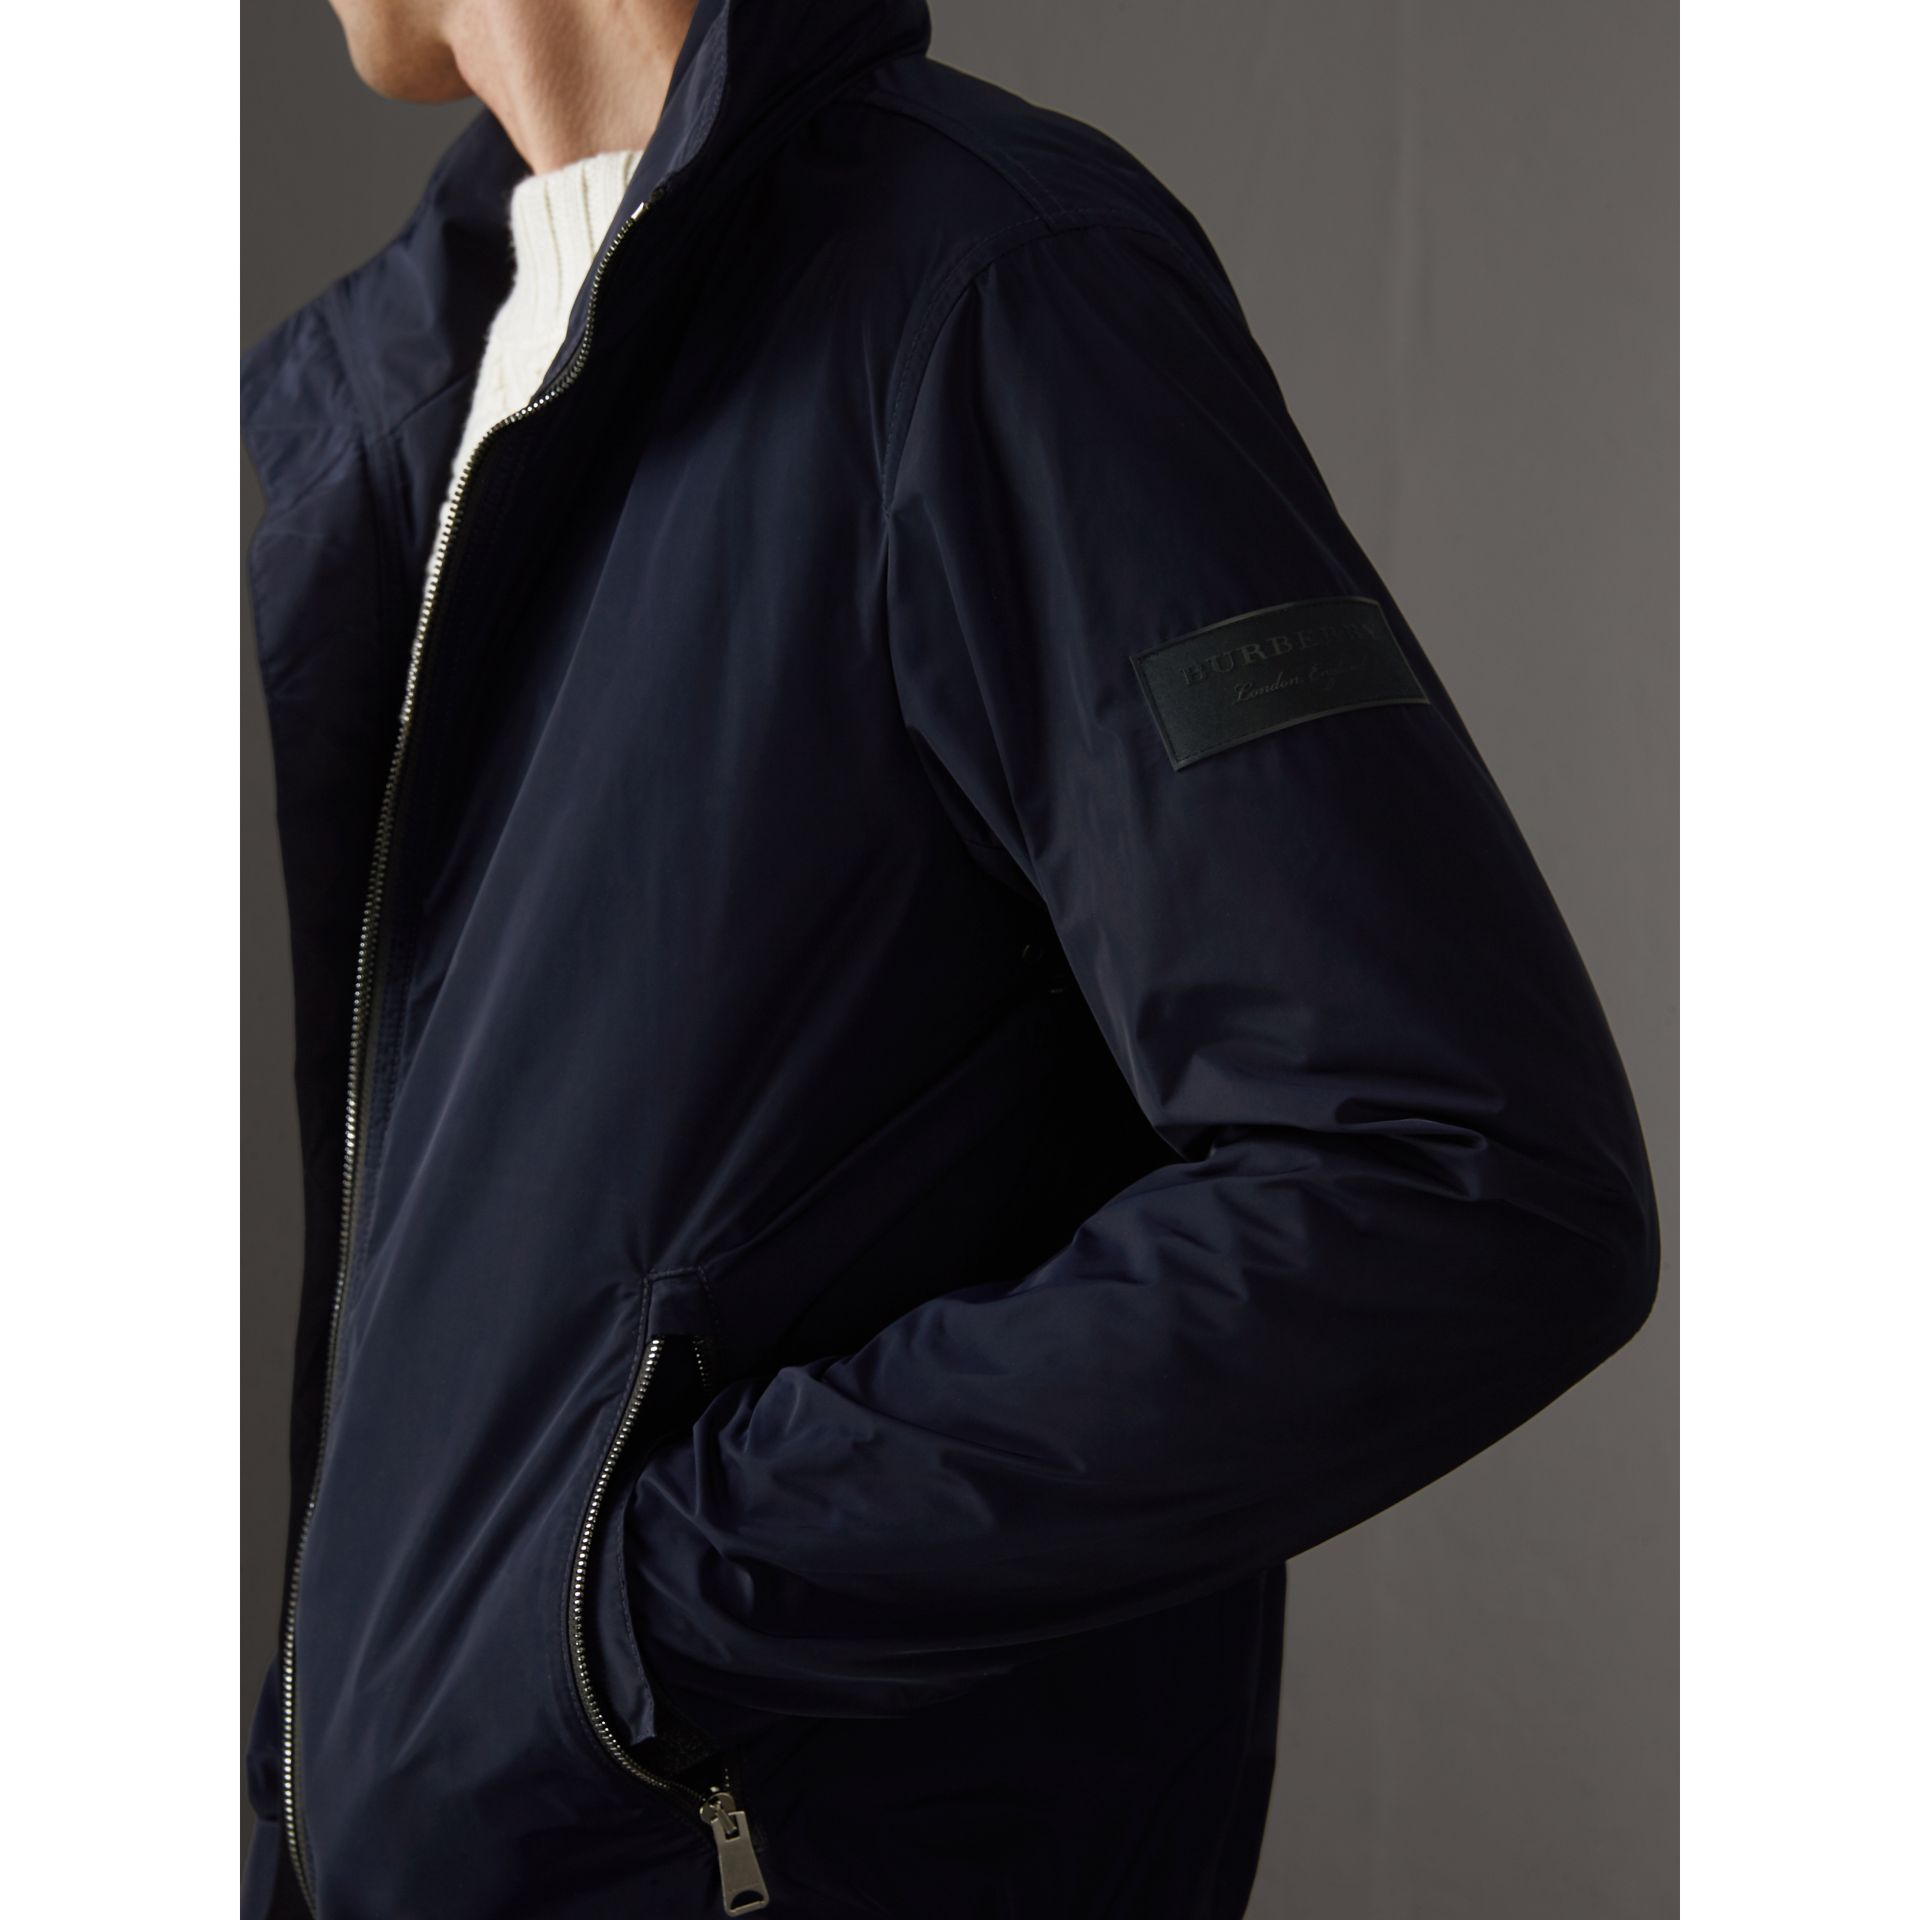 Veste imperméable à capuche repliable (Marine) - Homme | Burberry - photo de la galerie 1